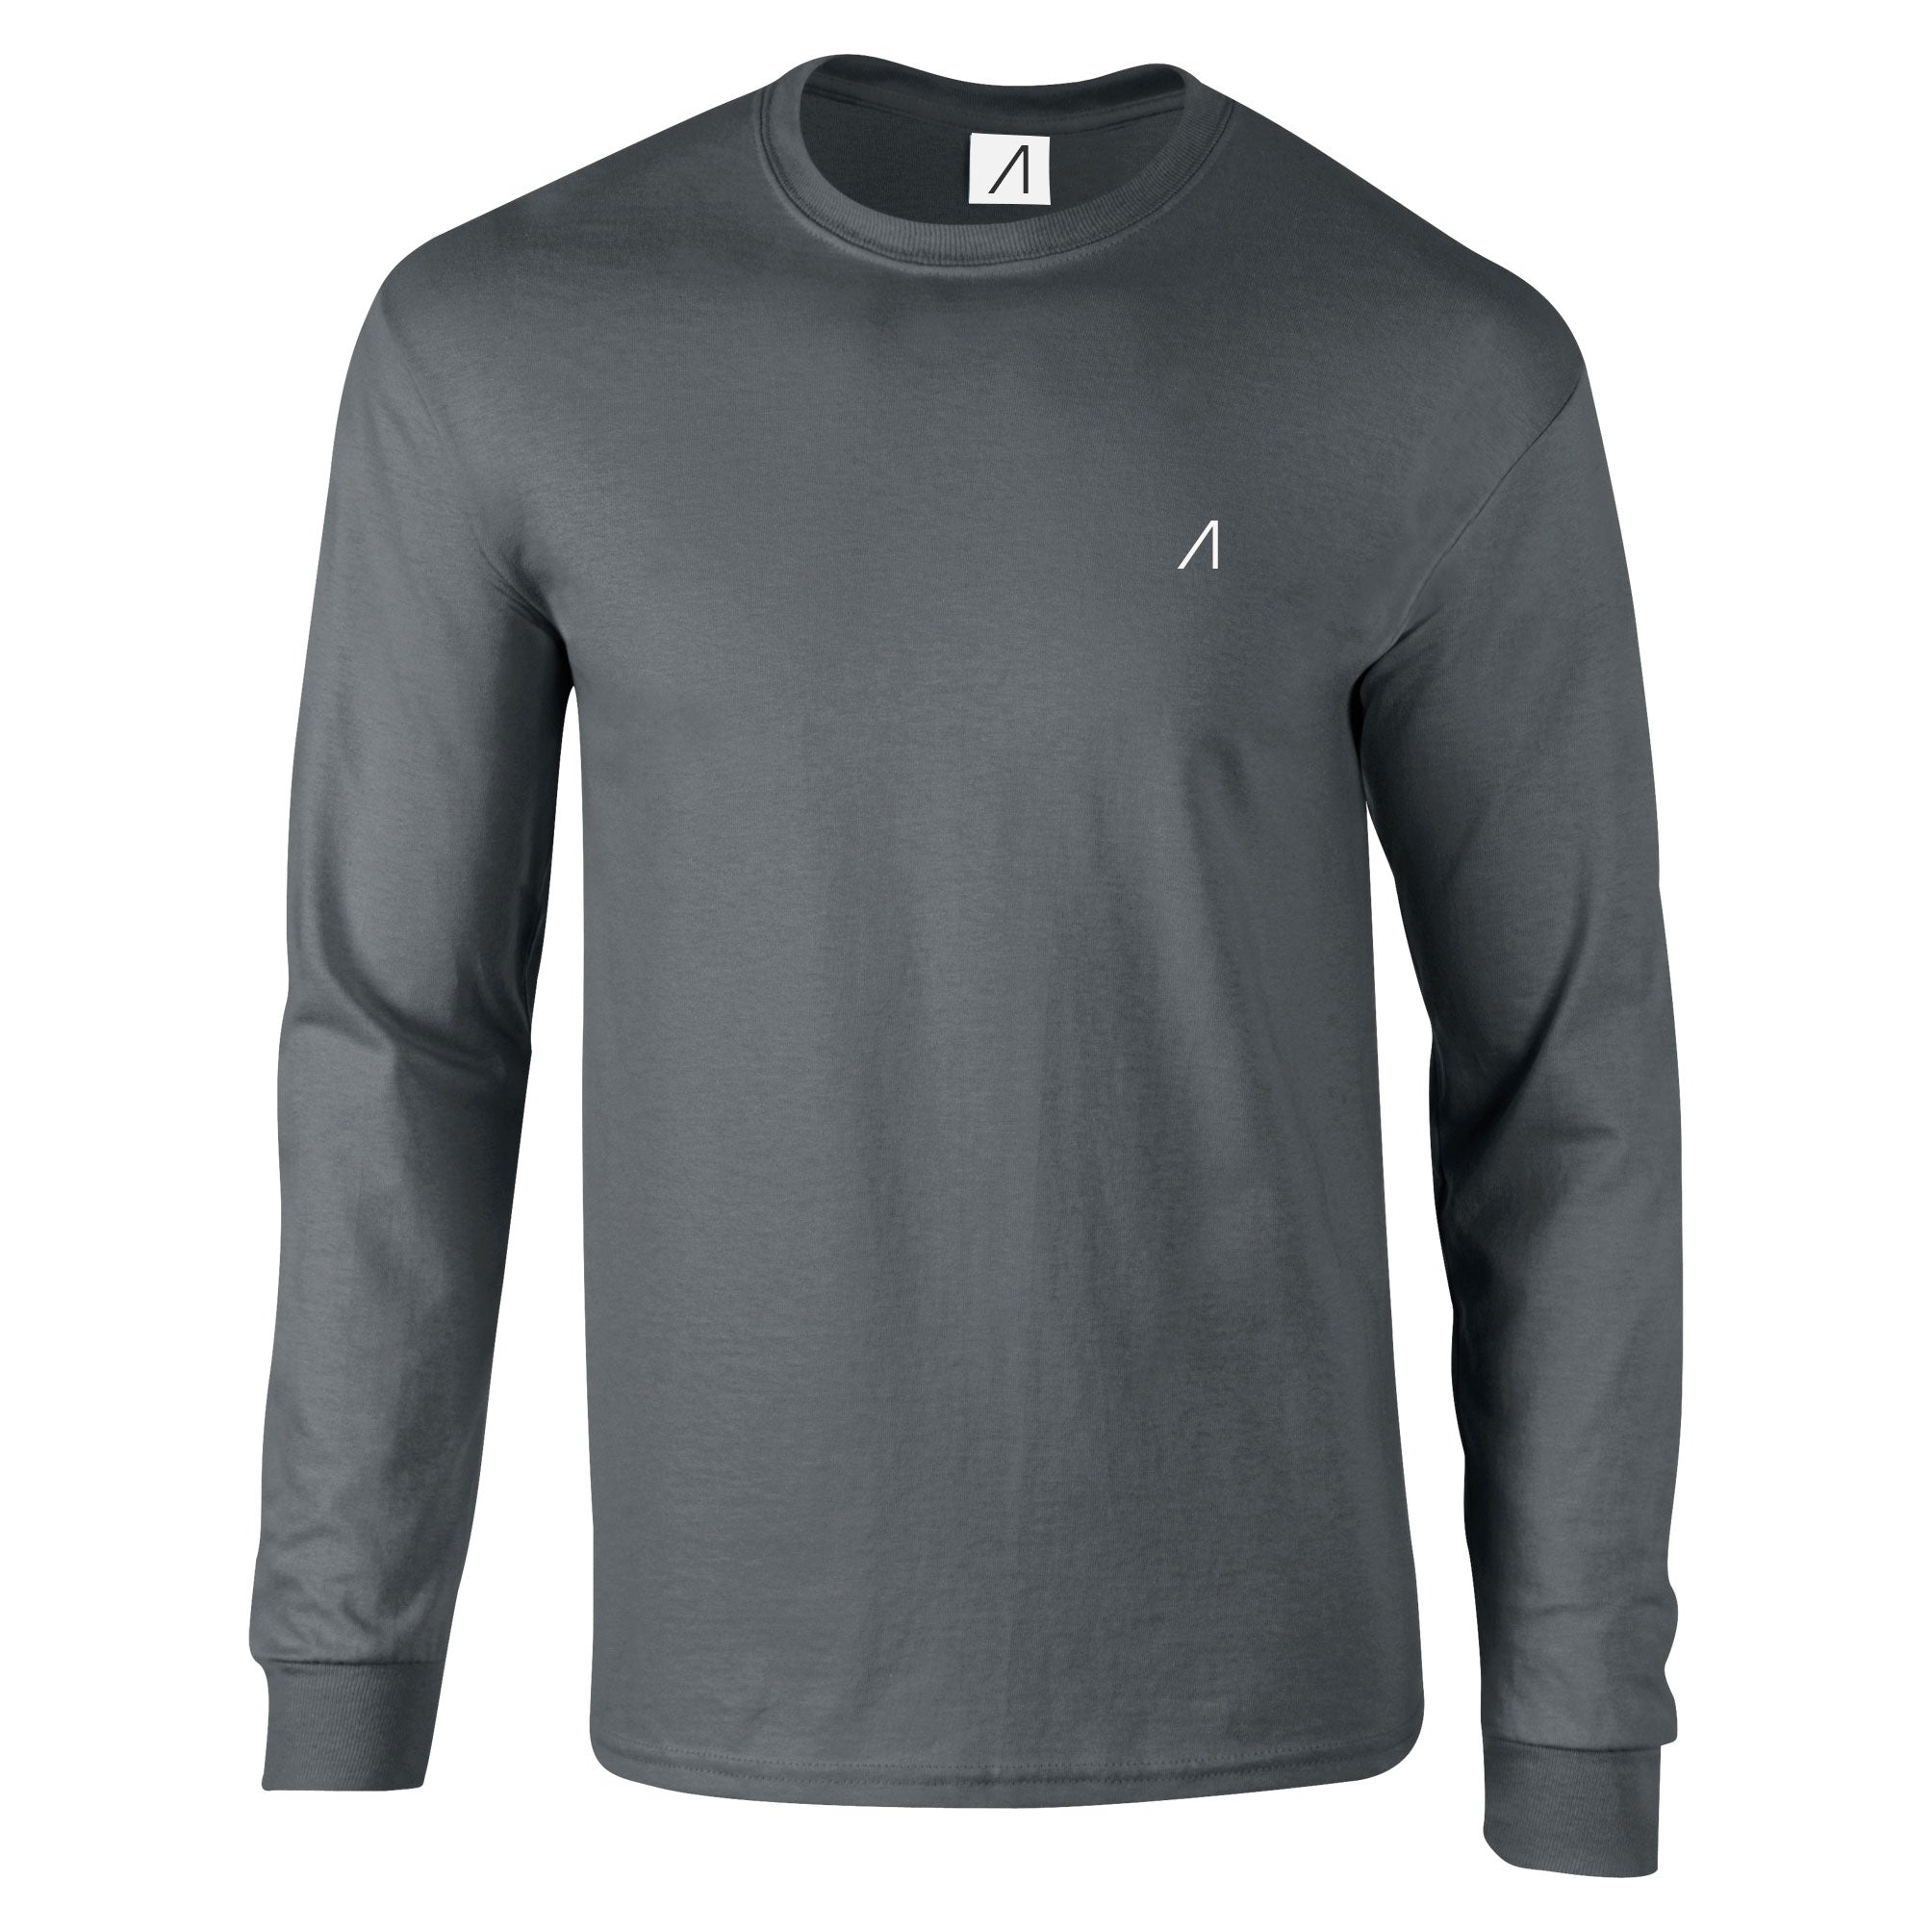 Mens Long Sleeve T-shirt